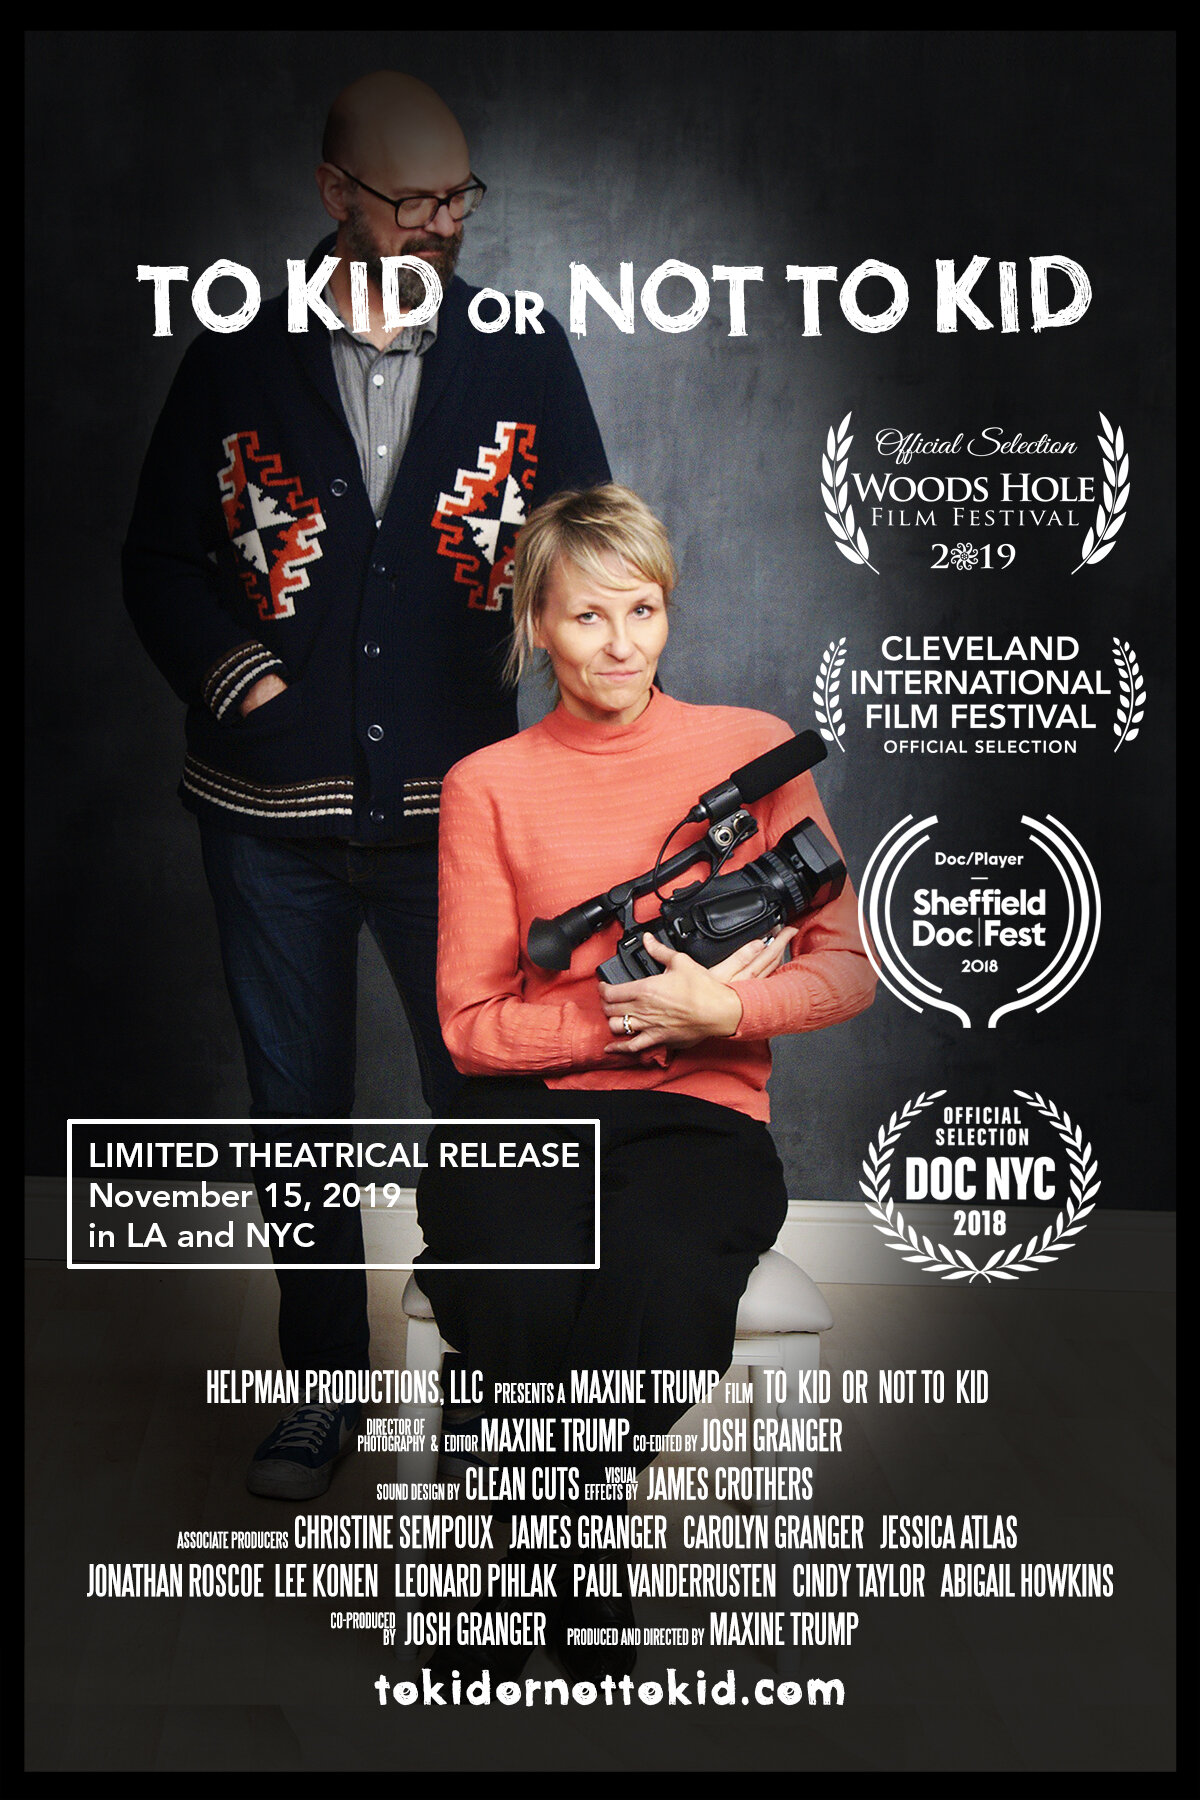 Childfree film to kid or not to kid release